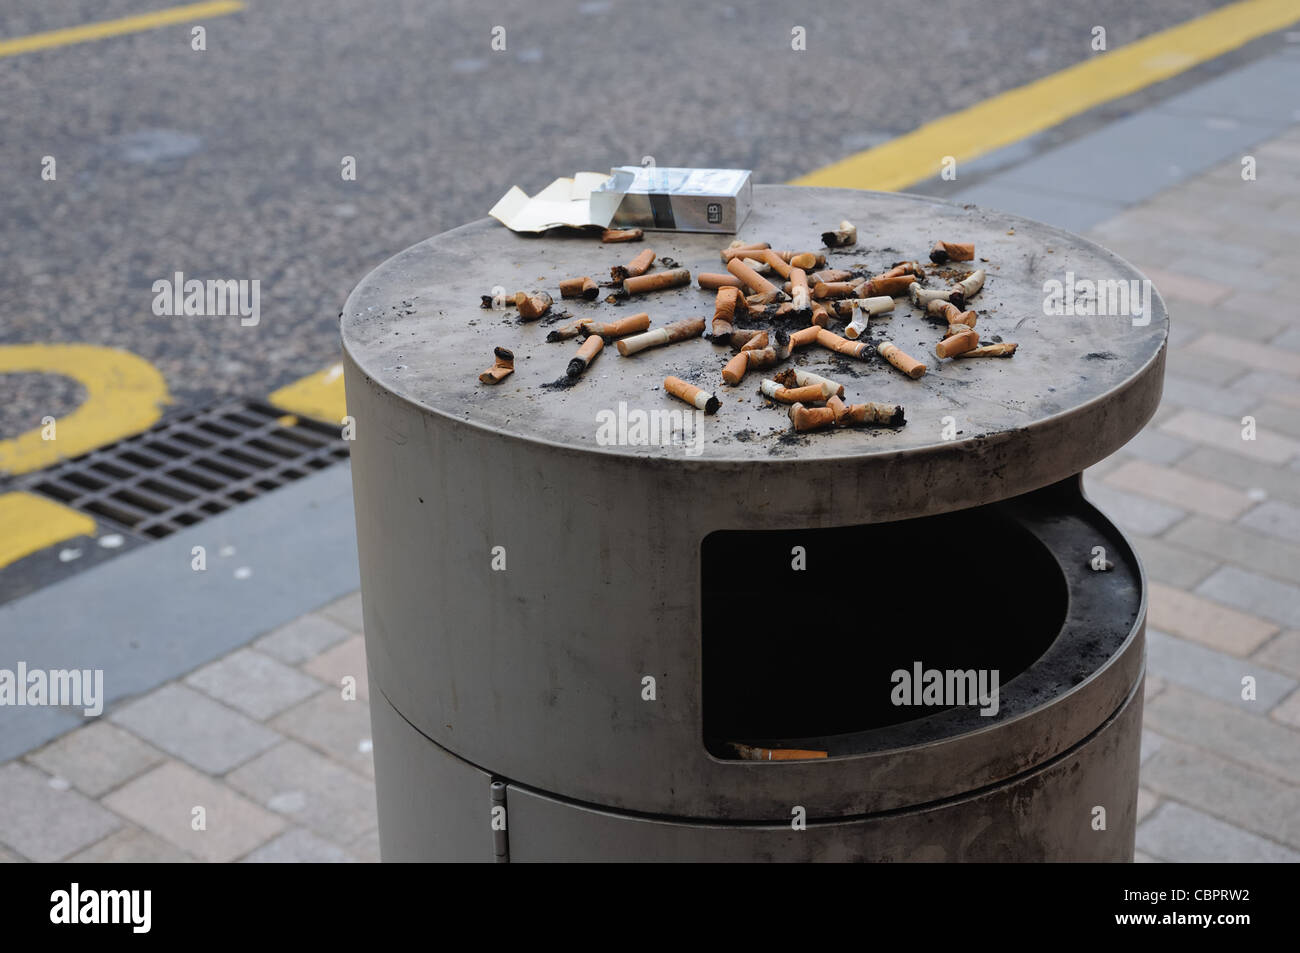 Street refuse bin with stubbed out cigarette ends. - Stock Image